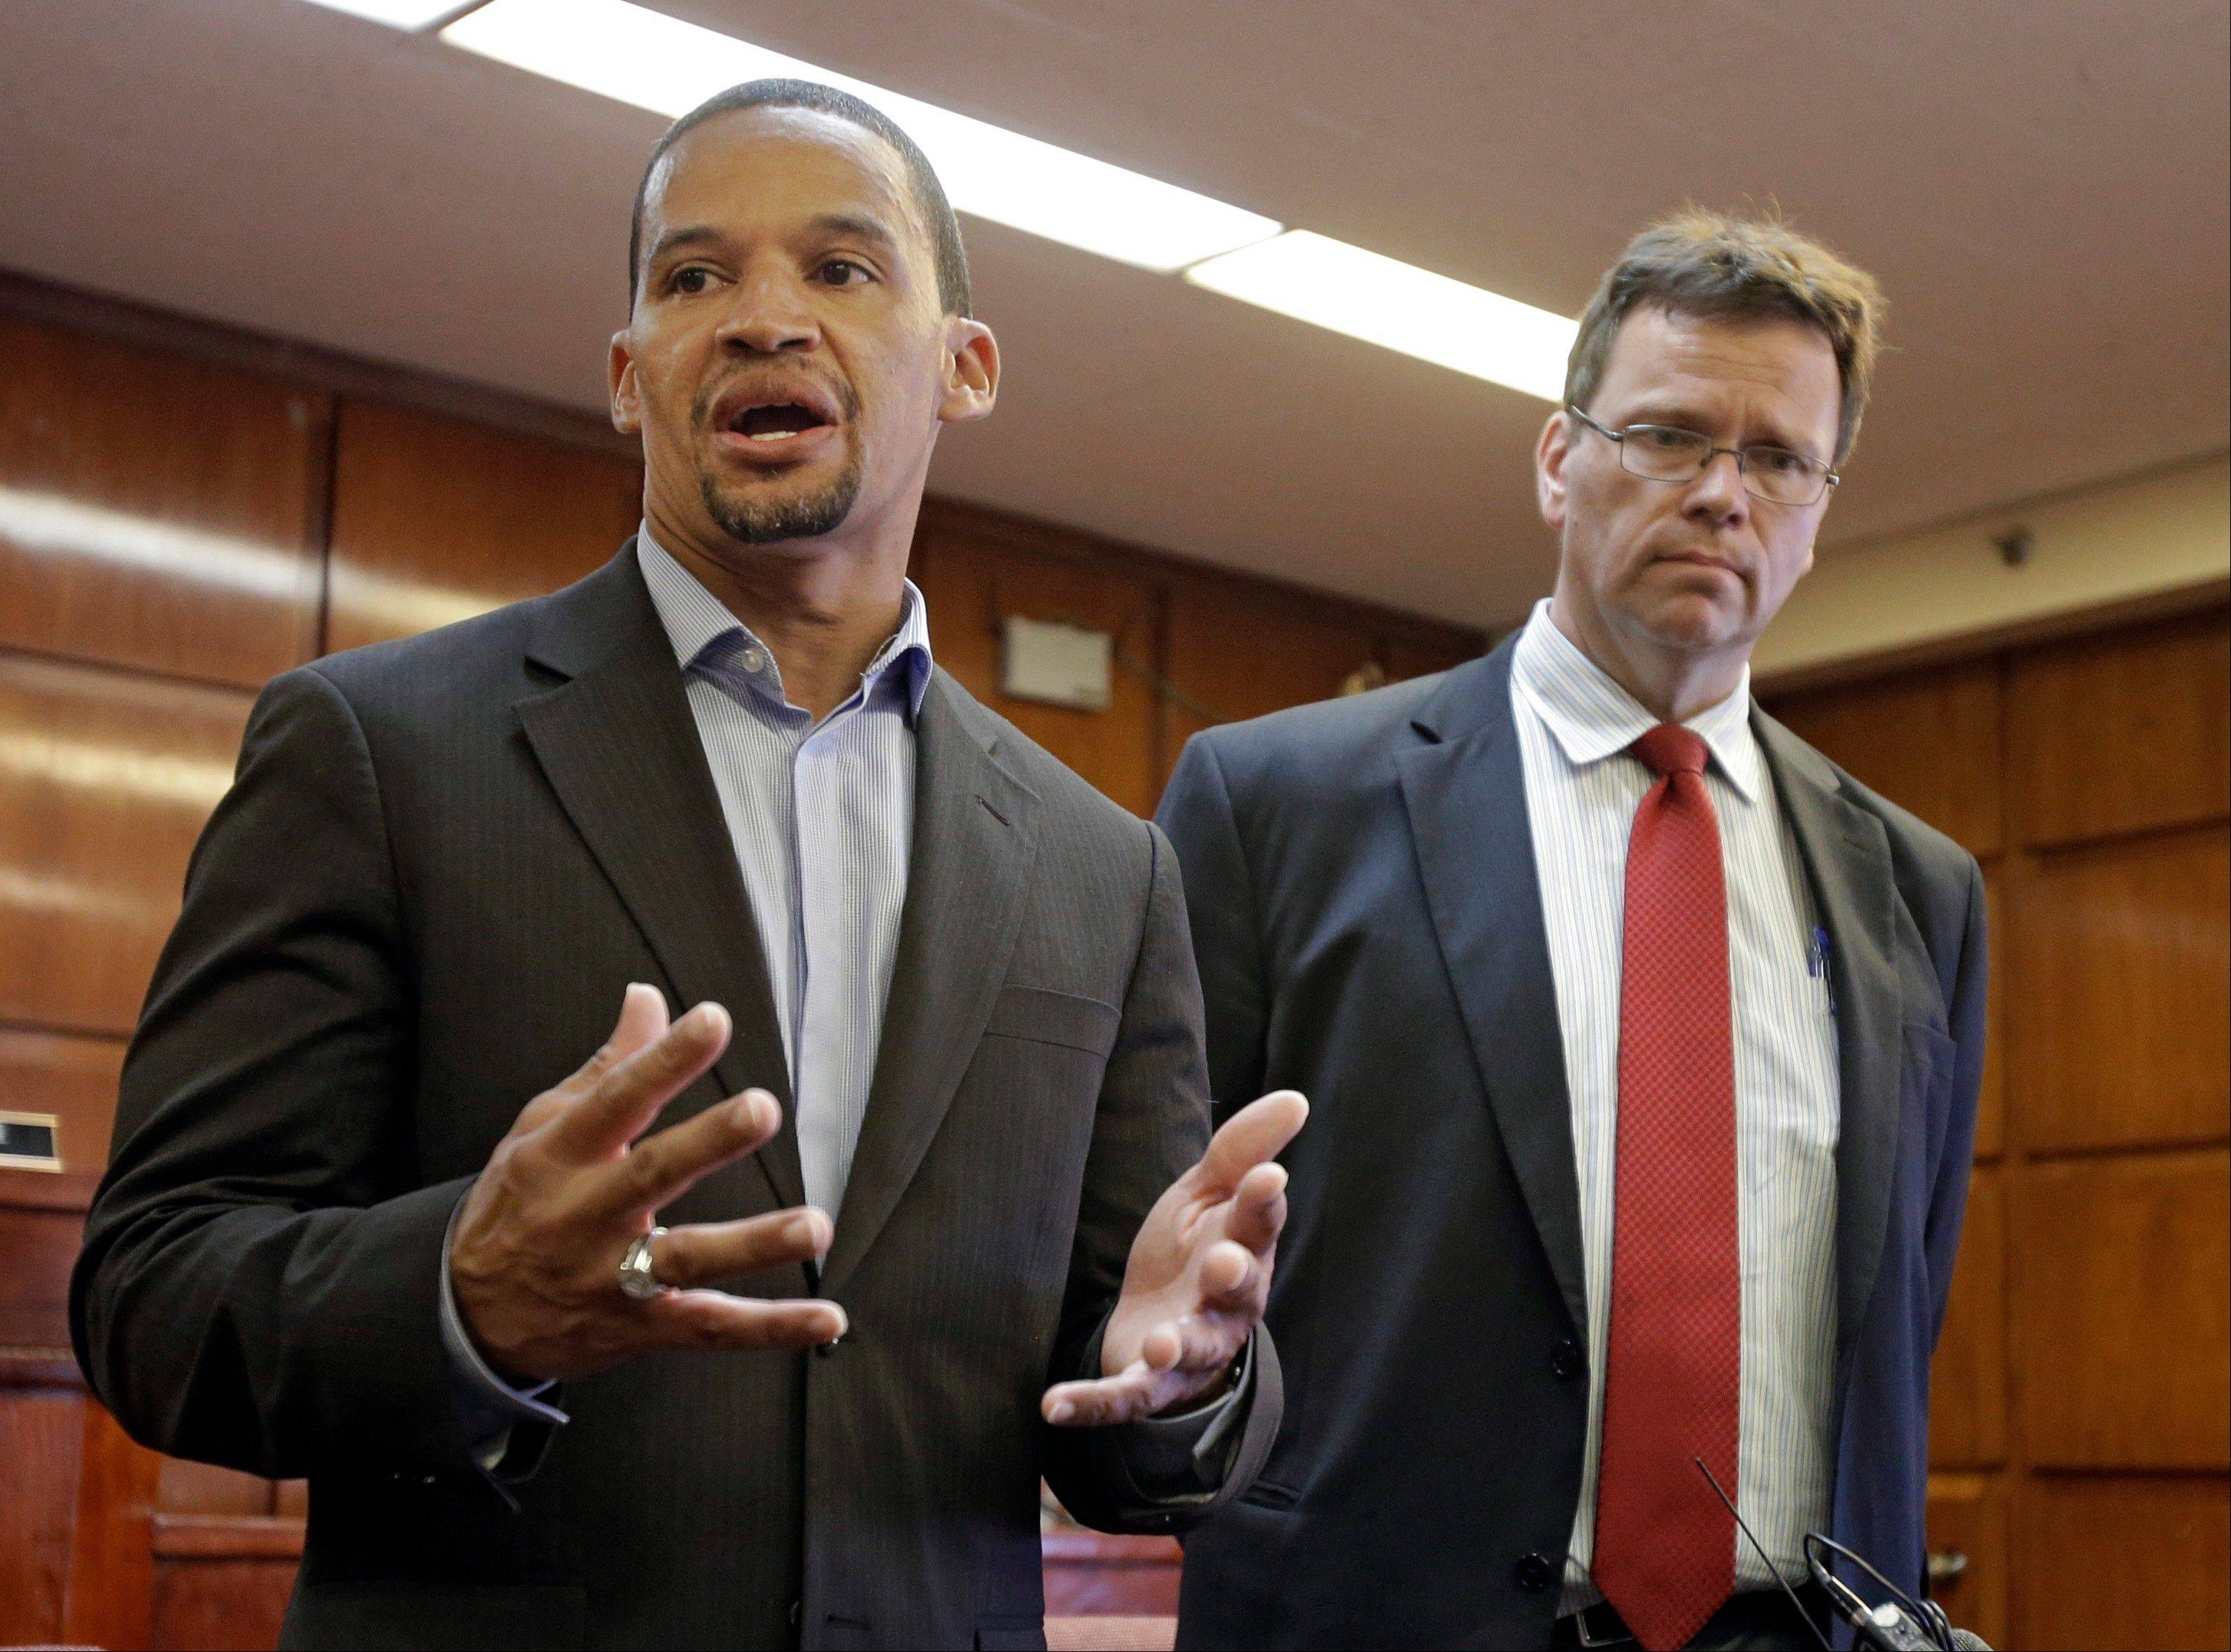 East Cleveland Mayor Gary Norton, left, speaks during a news conference with Cuyahoga County Medical Examiner Dr. Thomas Gilson, in East Cleveland, Ohio, Tuesday, July 23, 2013. Norton announced that Shetisha Sheeley, 28, has been identified as the second of three murdered women found in trash bags in the city.